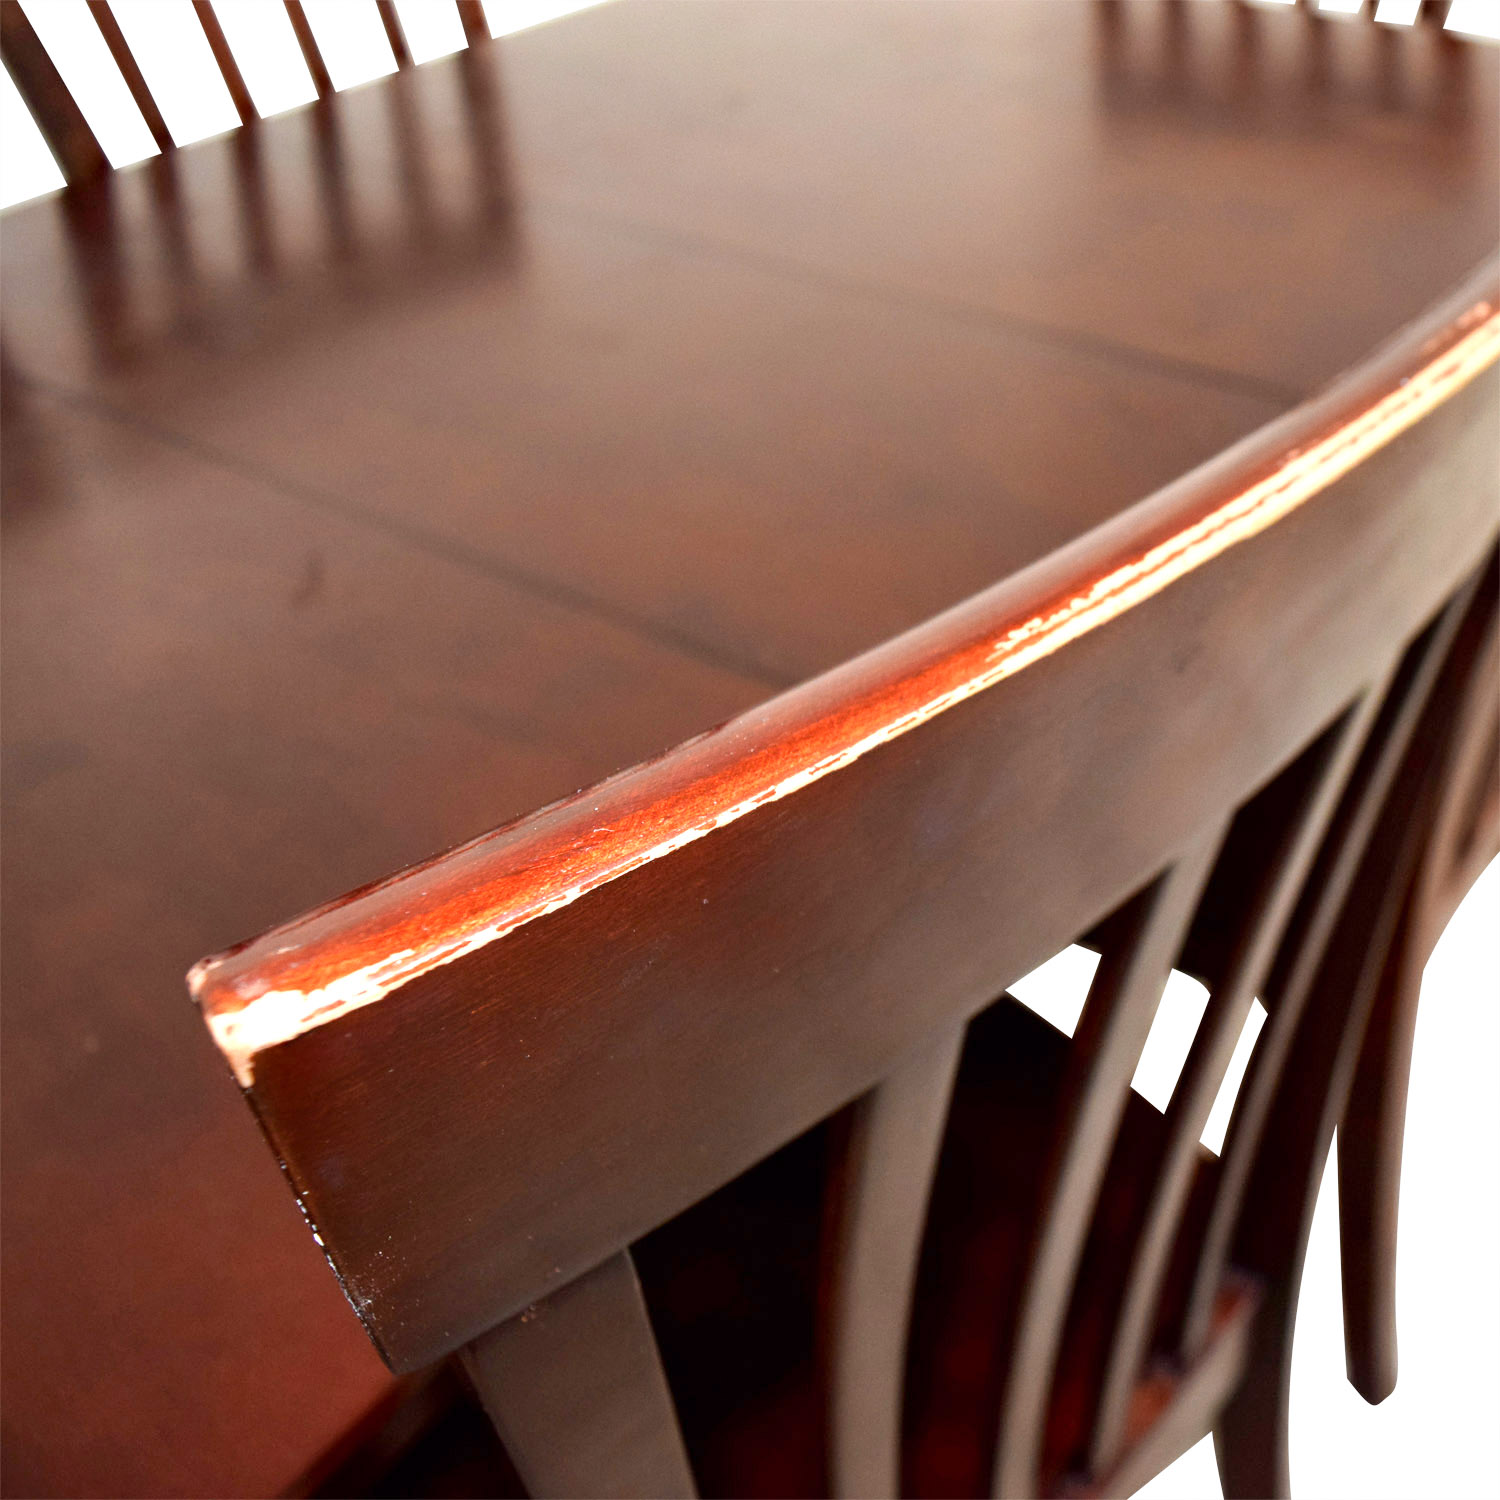 Bobs Furniture Bobs Furniture Dining Room Table and Chairs used